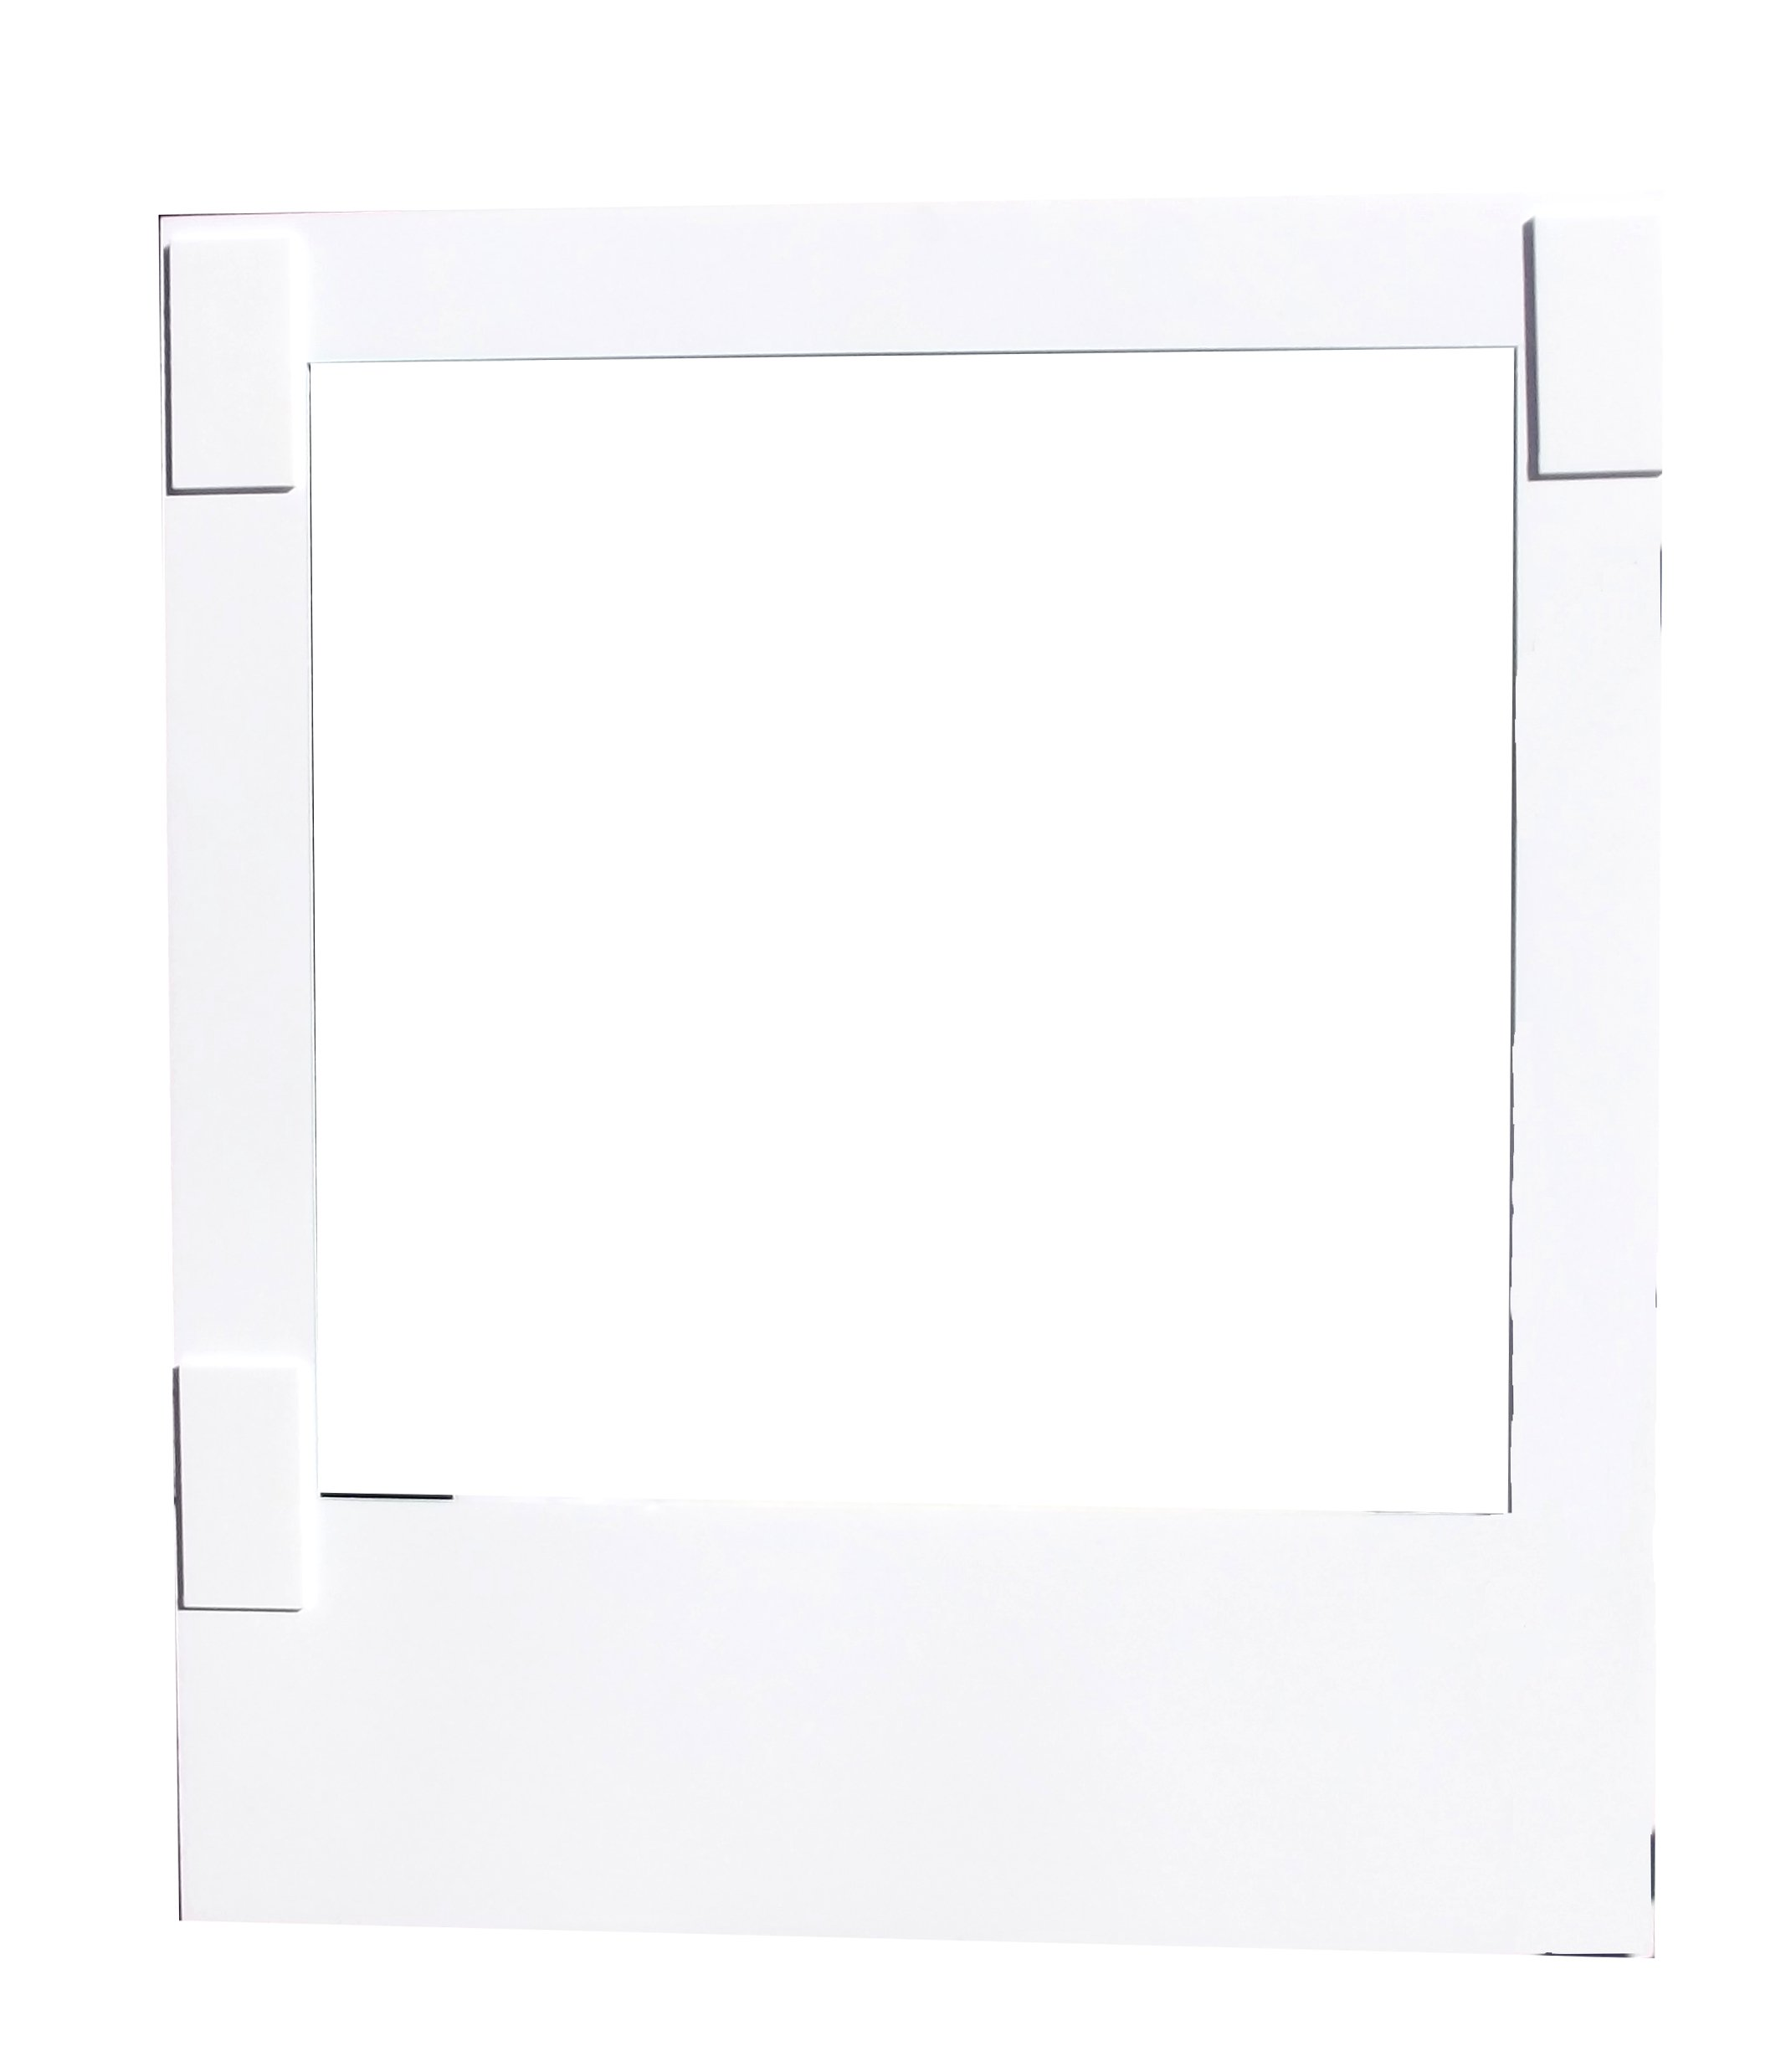 Aahs Engraving ''St. Patrick's Day'' Party Frame Photo Prop, 35 X 30 inches